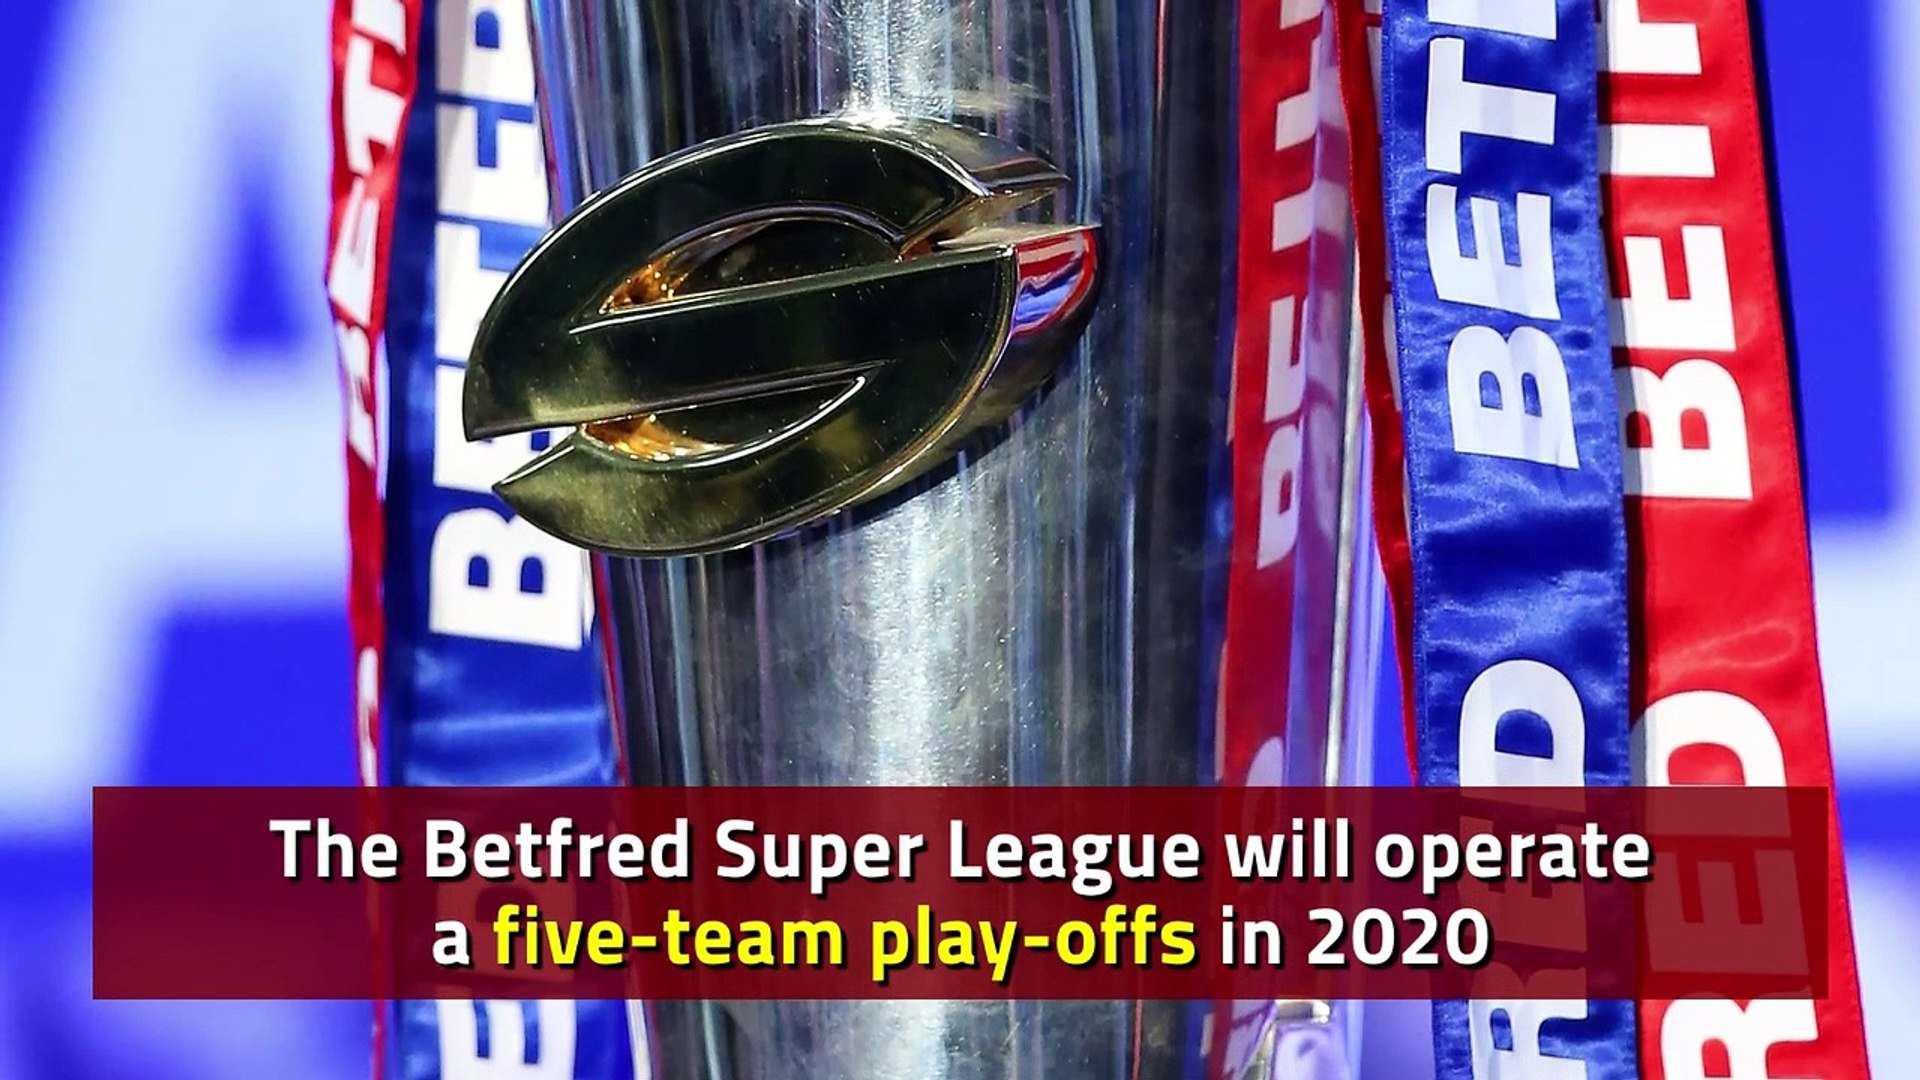 Super League Facts